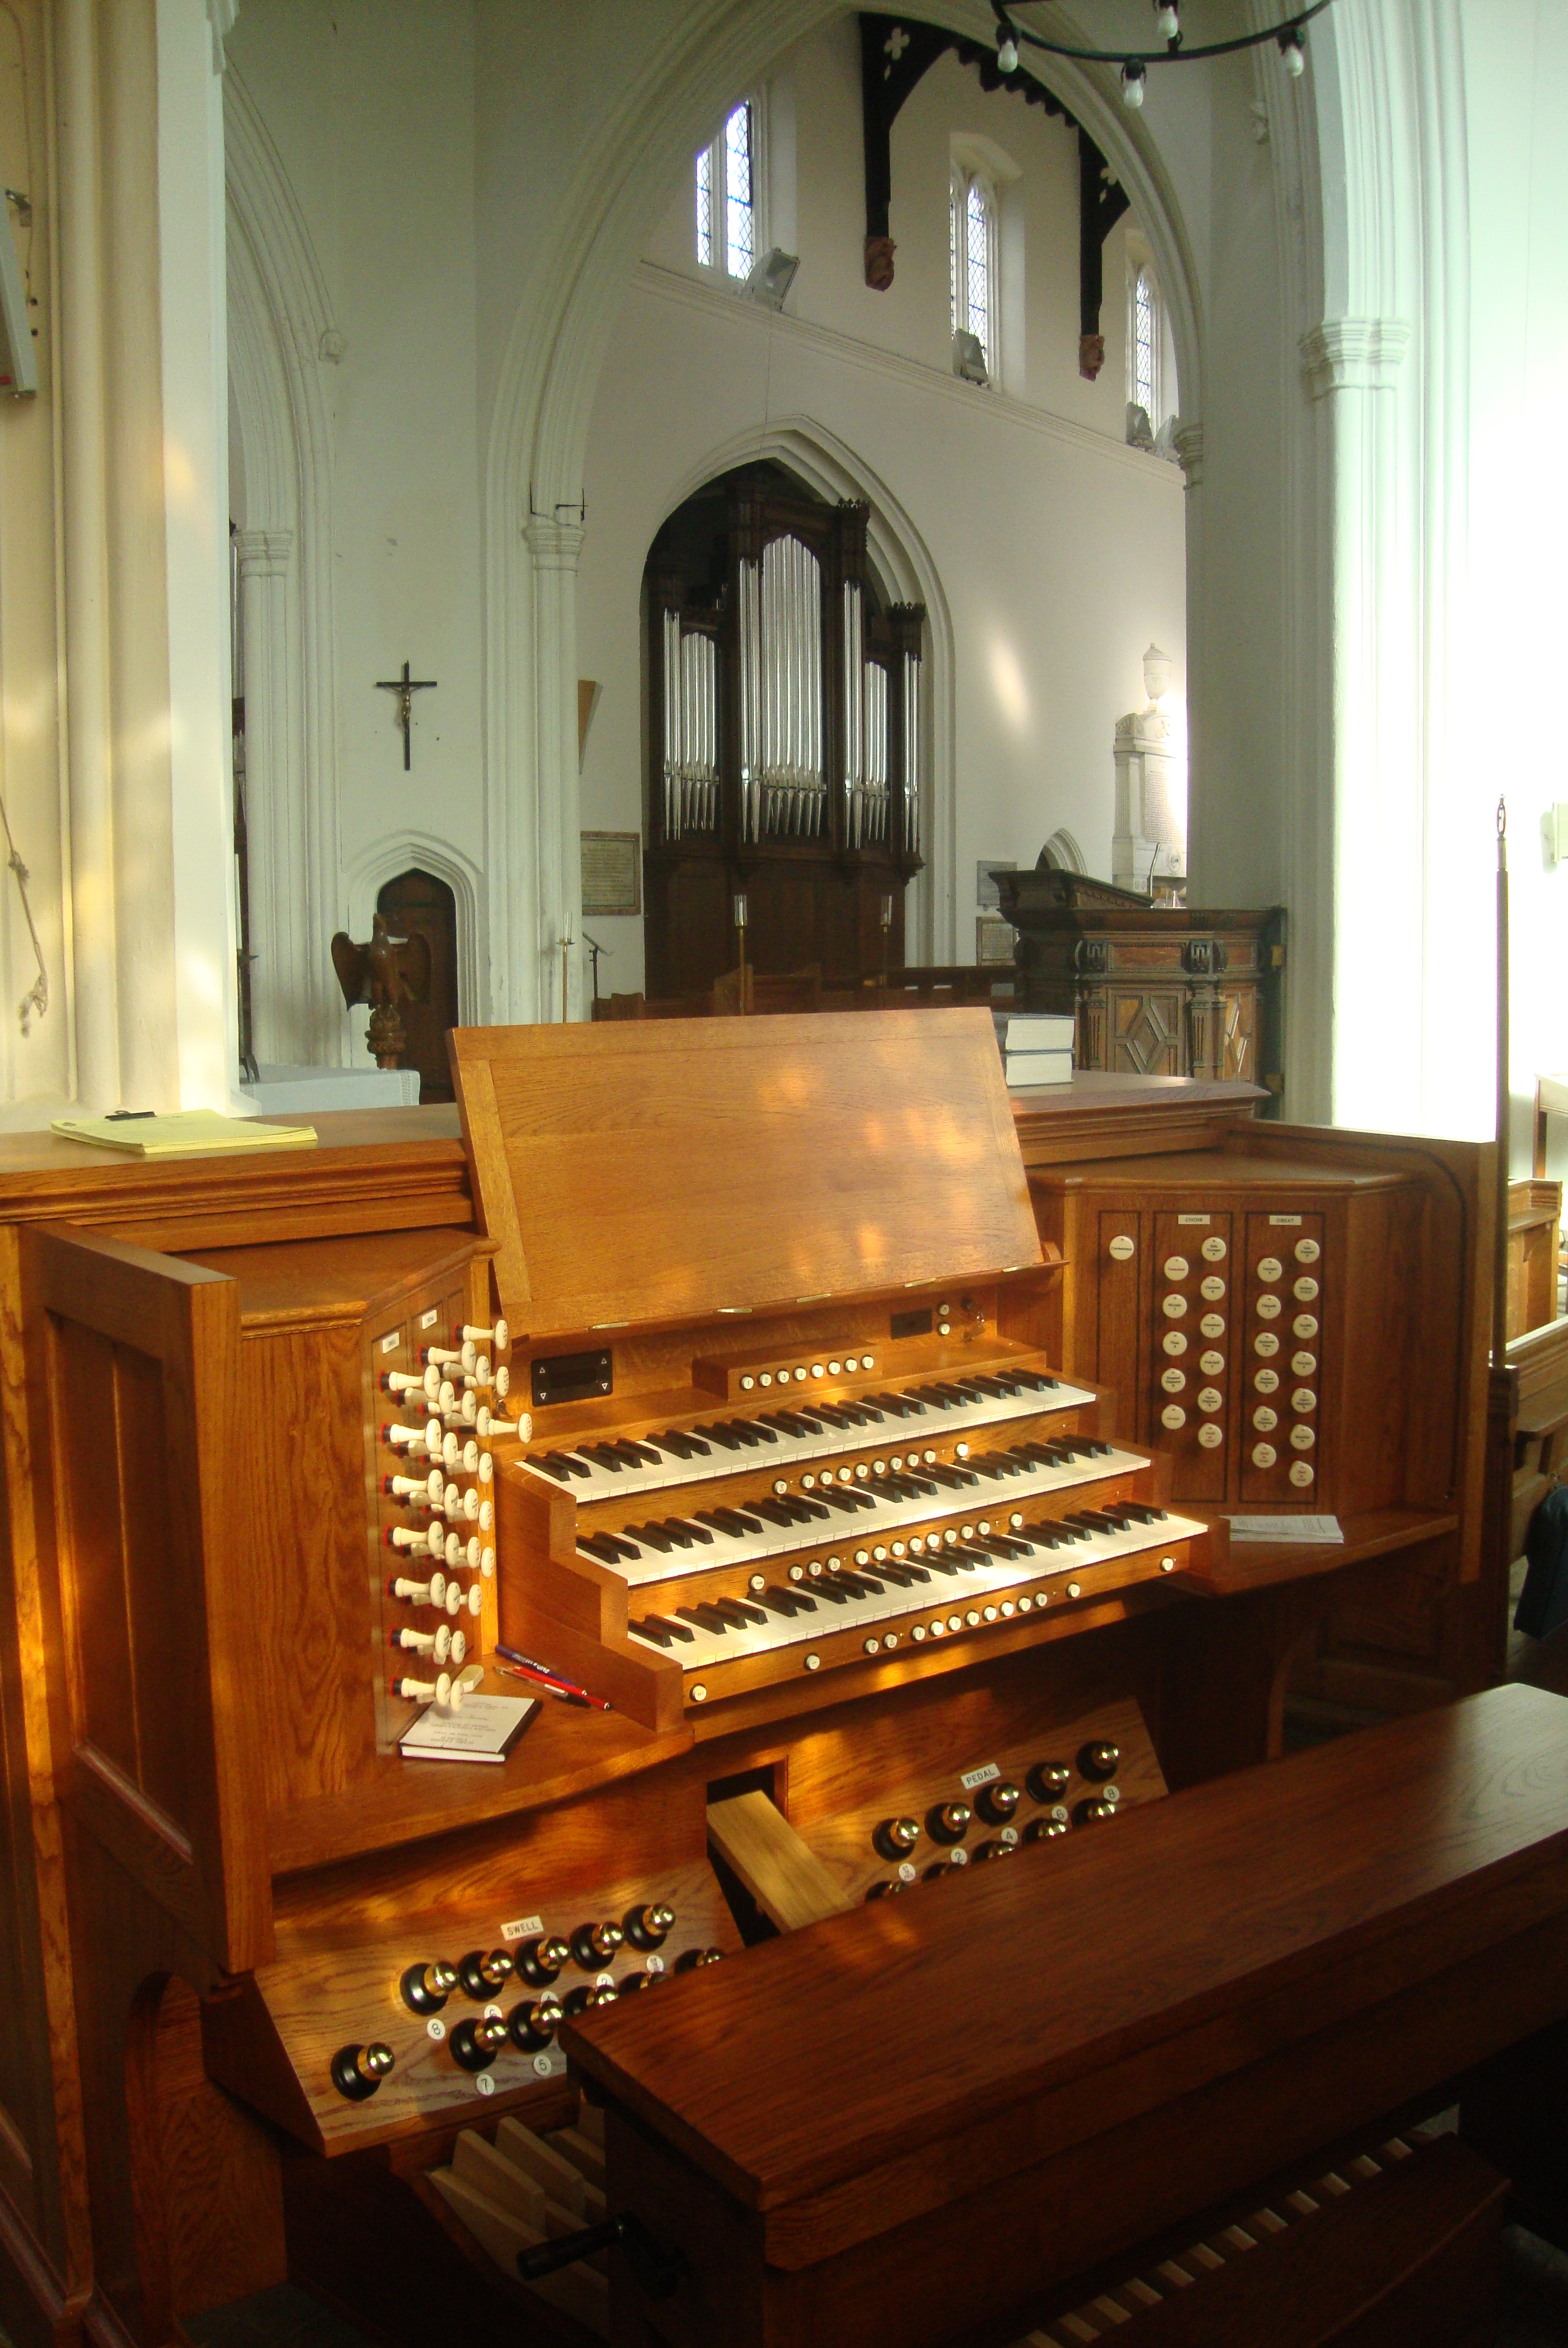 Image: The console at St Mary's, Ware